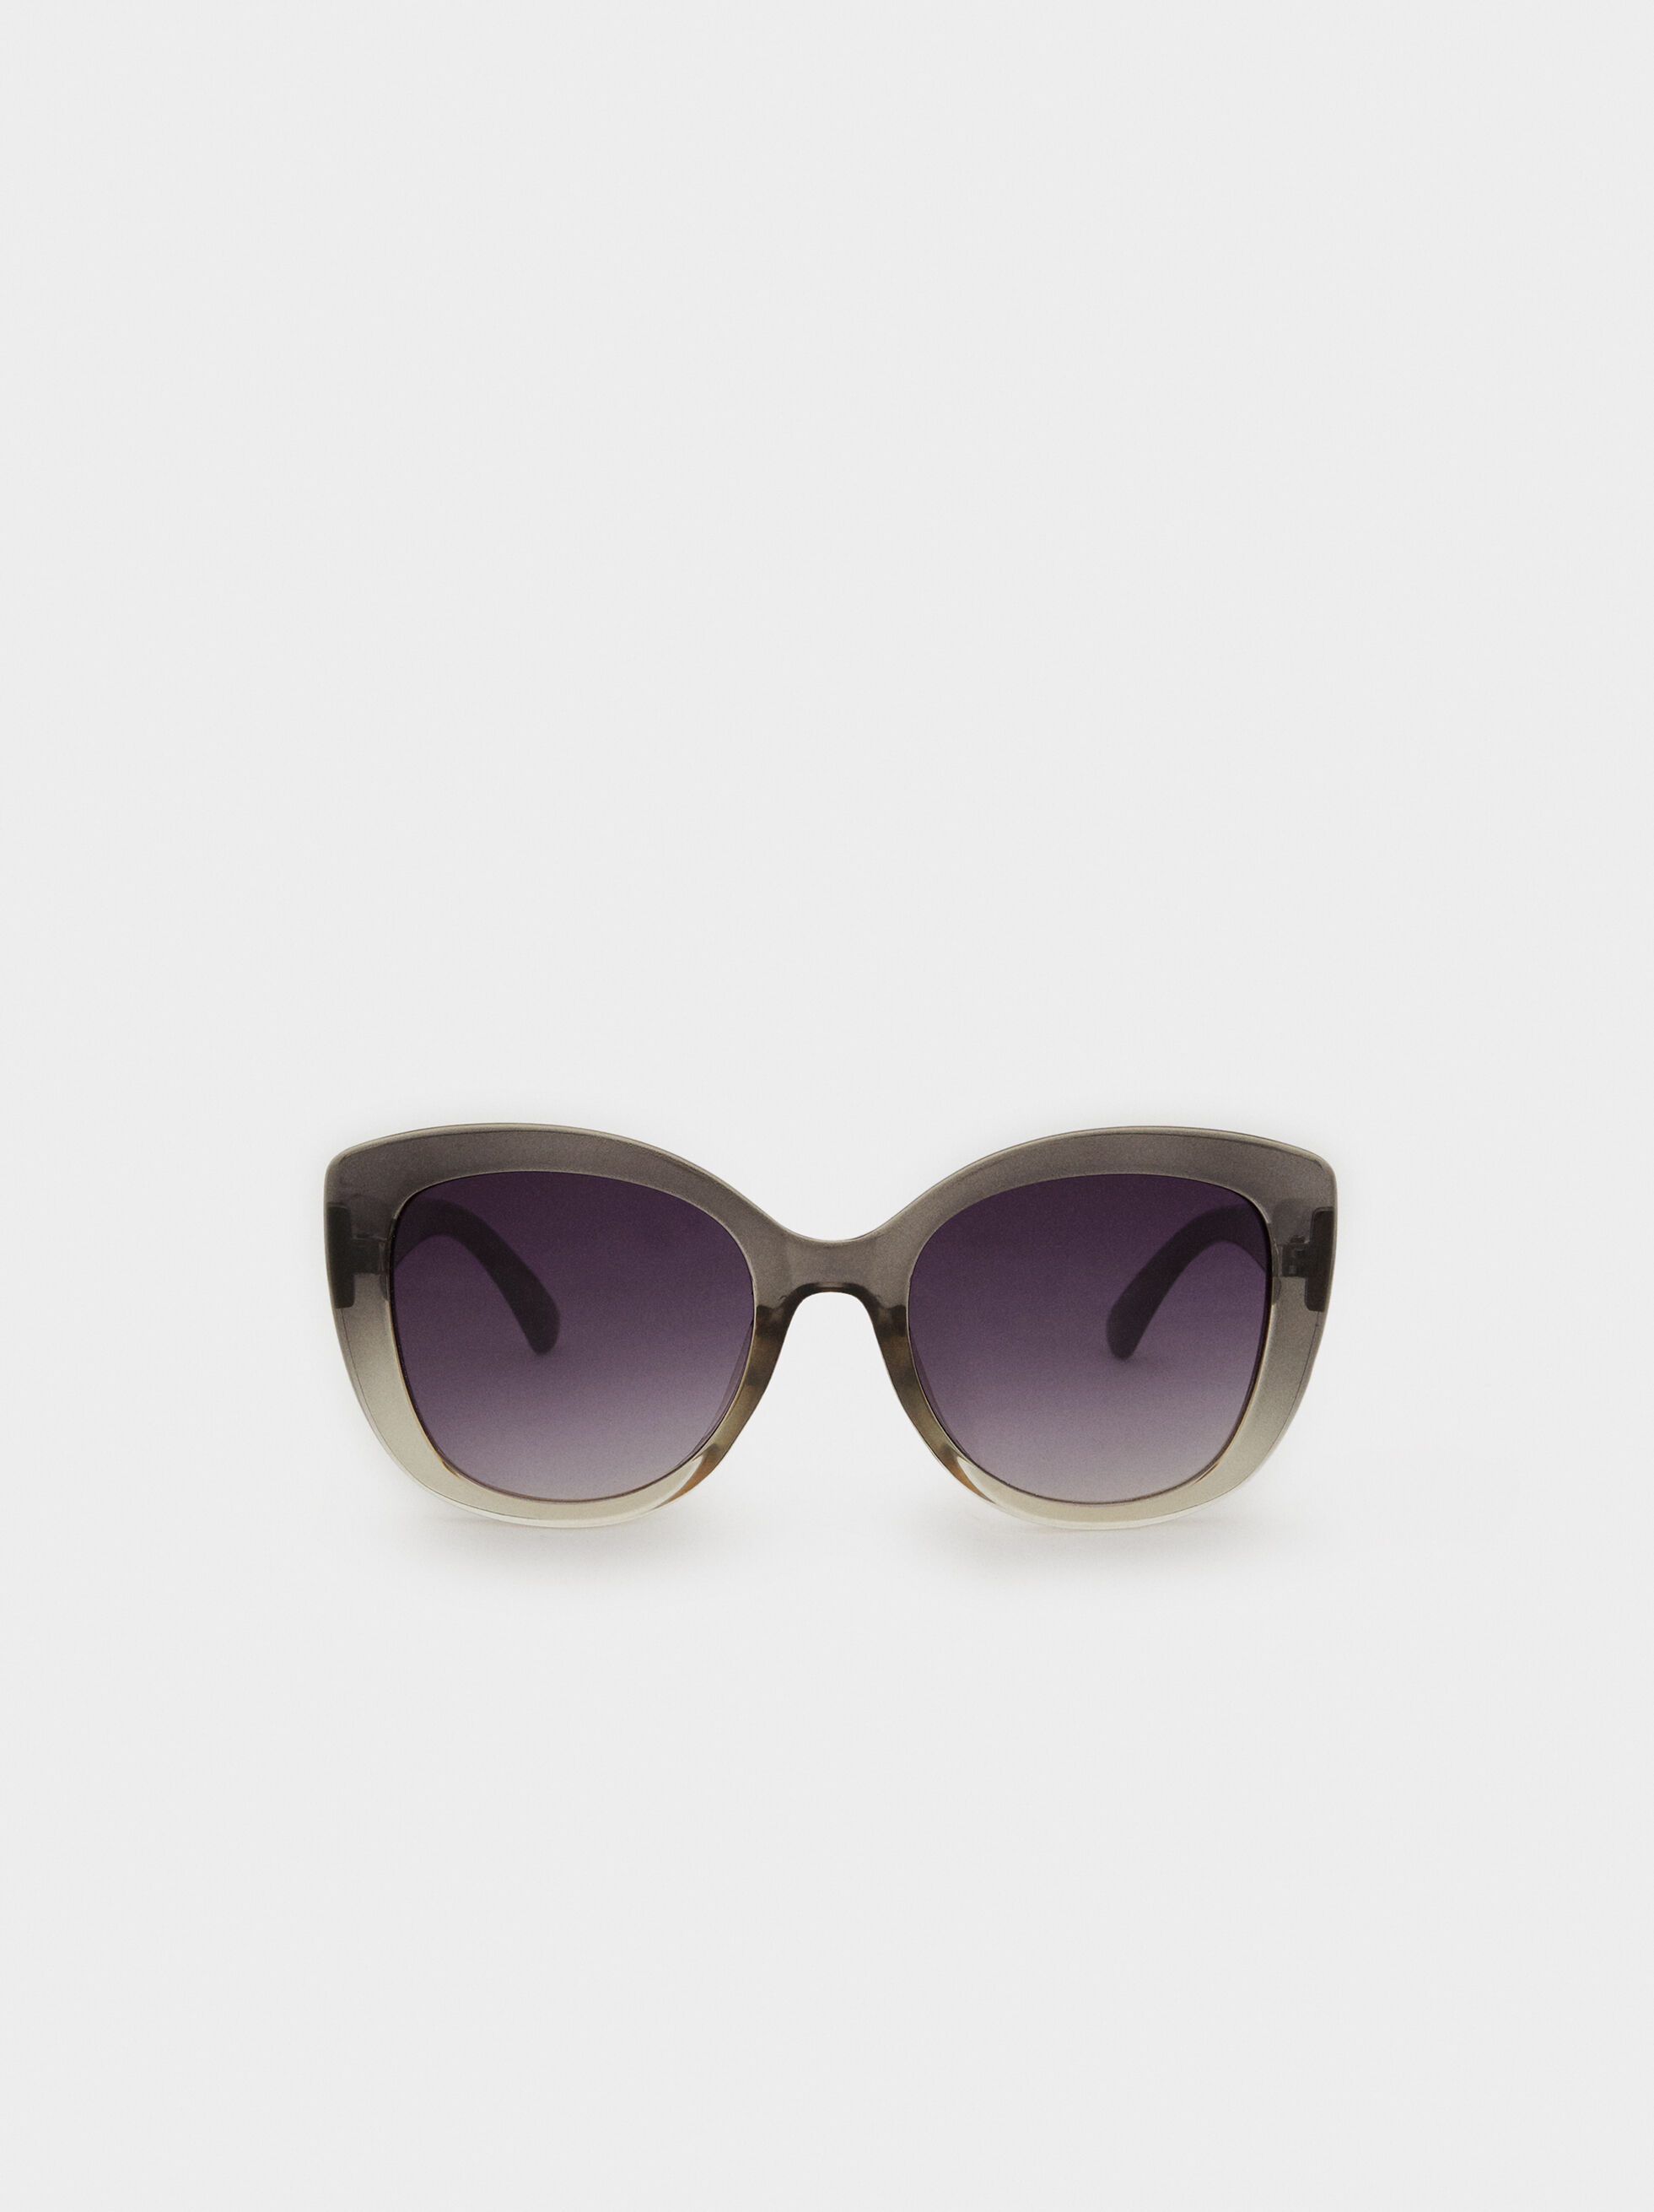 Resin Sunglasses, Grey, hi-res